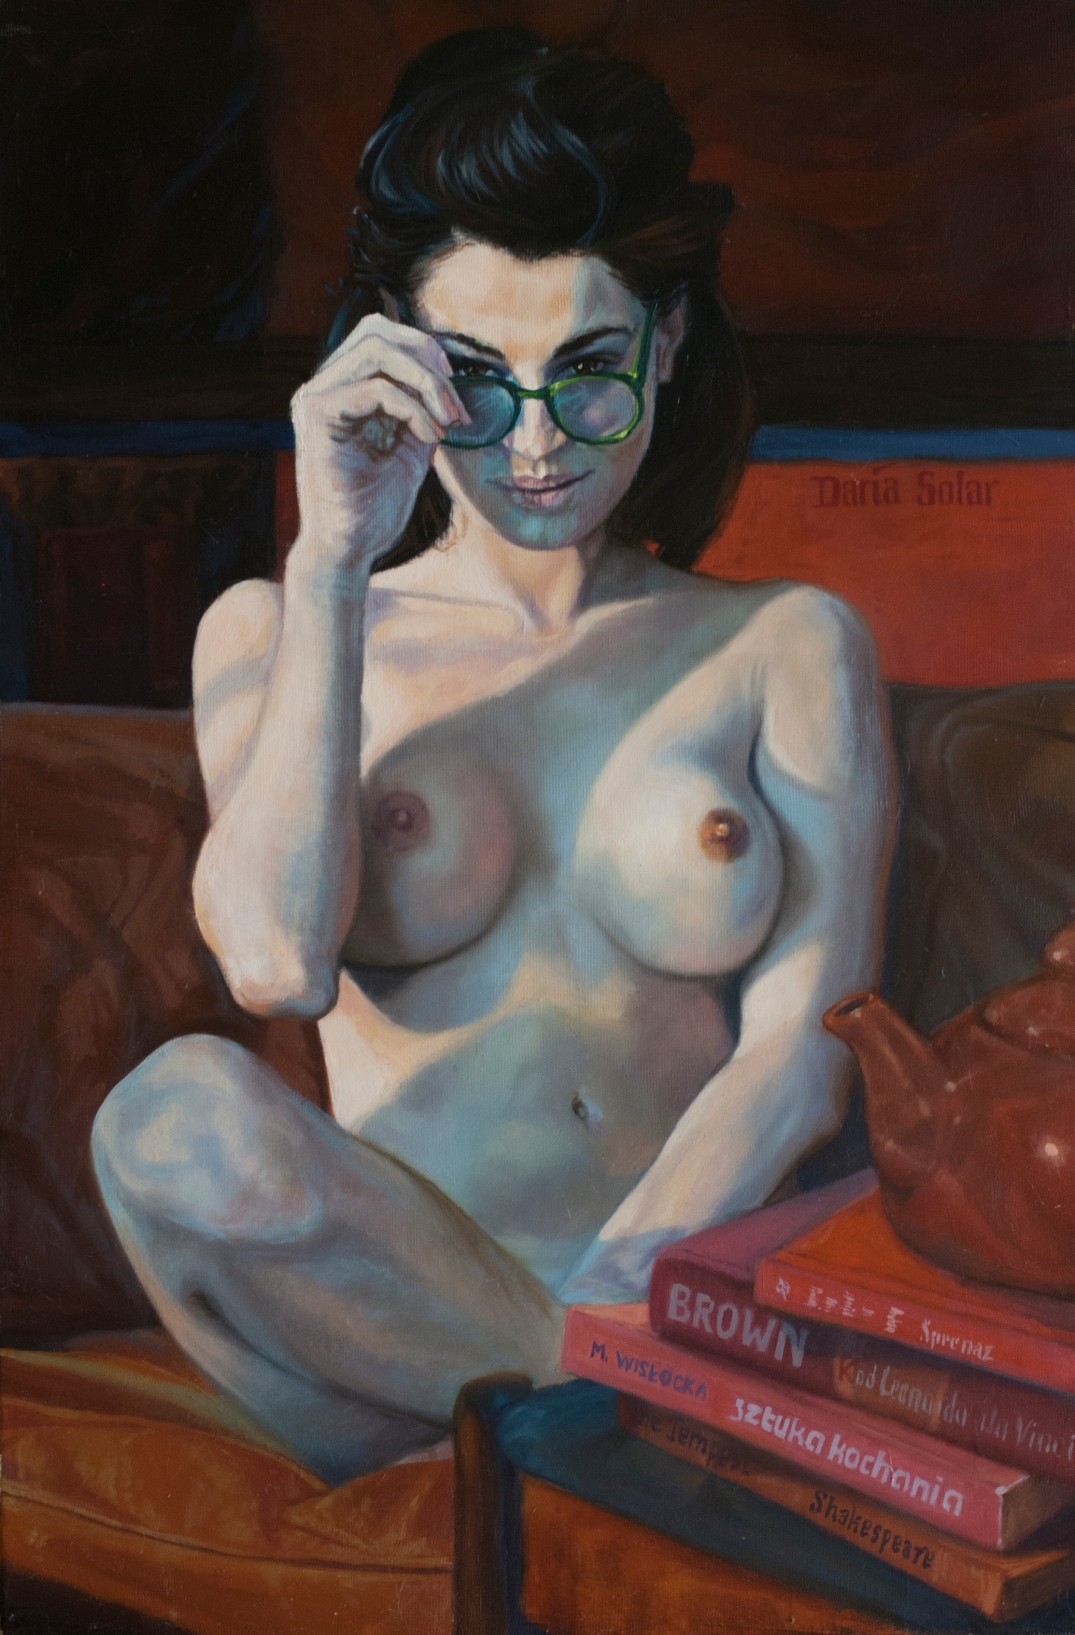 you dont read - Im not having sex with you by Daria Solar oil on canvas 40x60